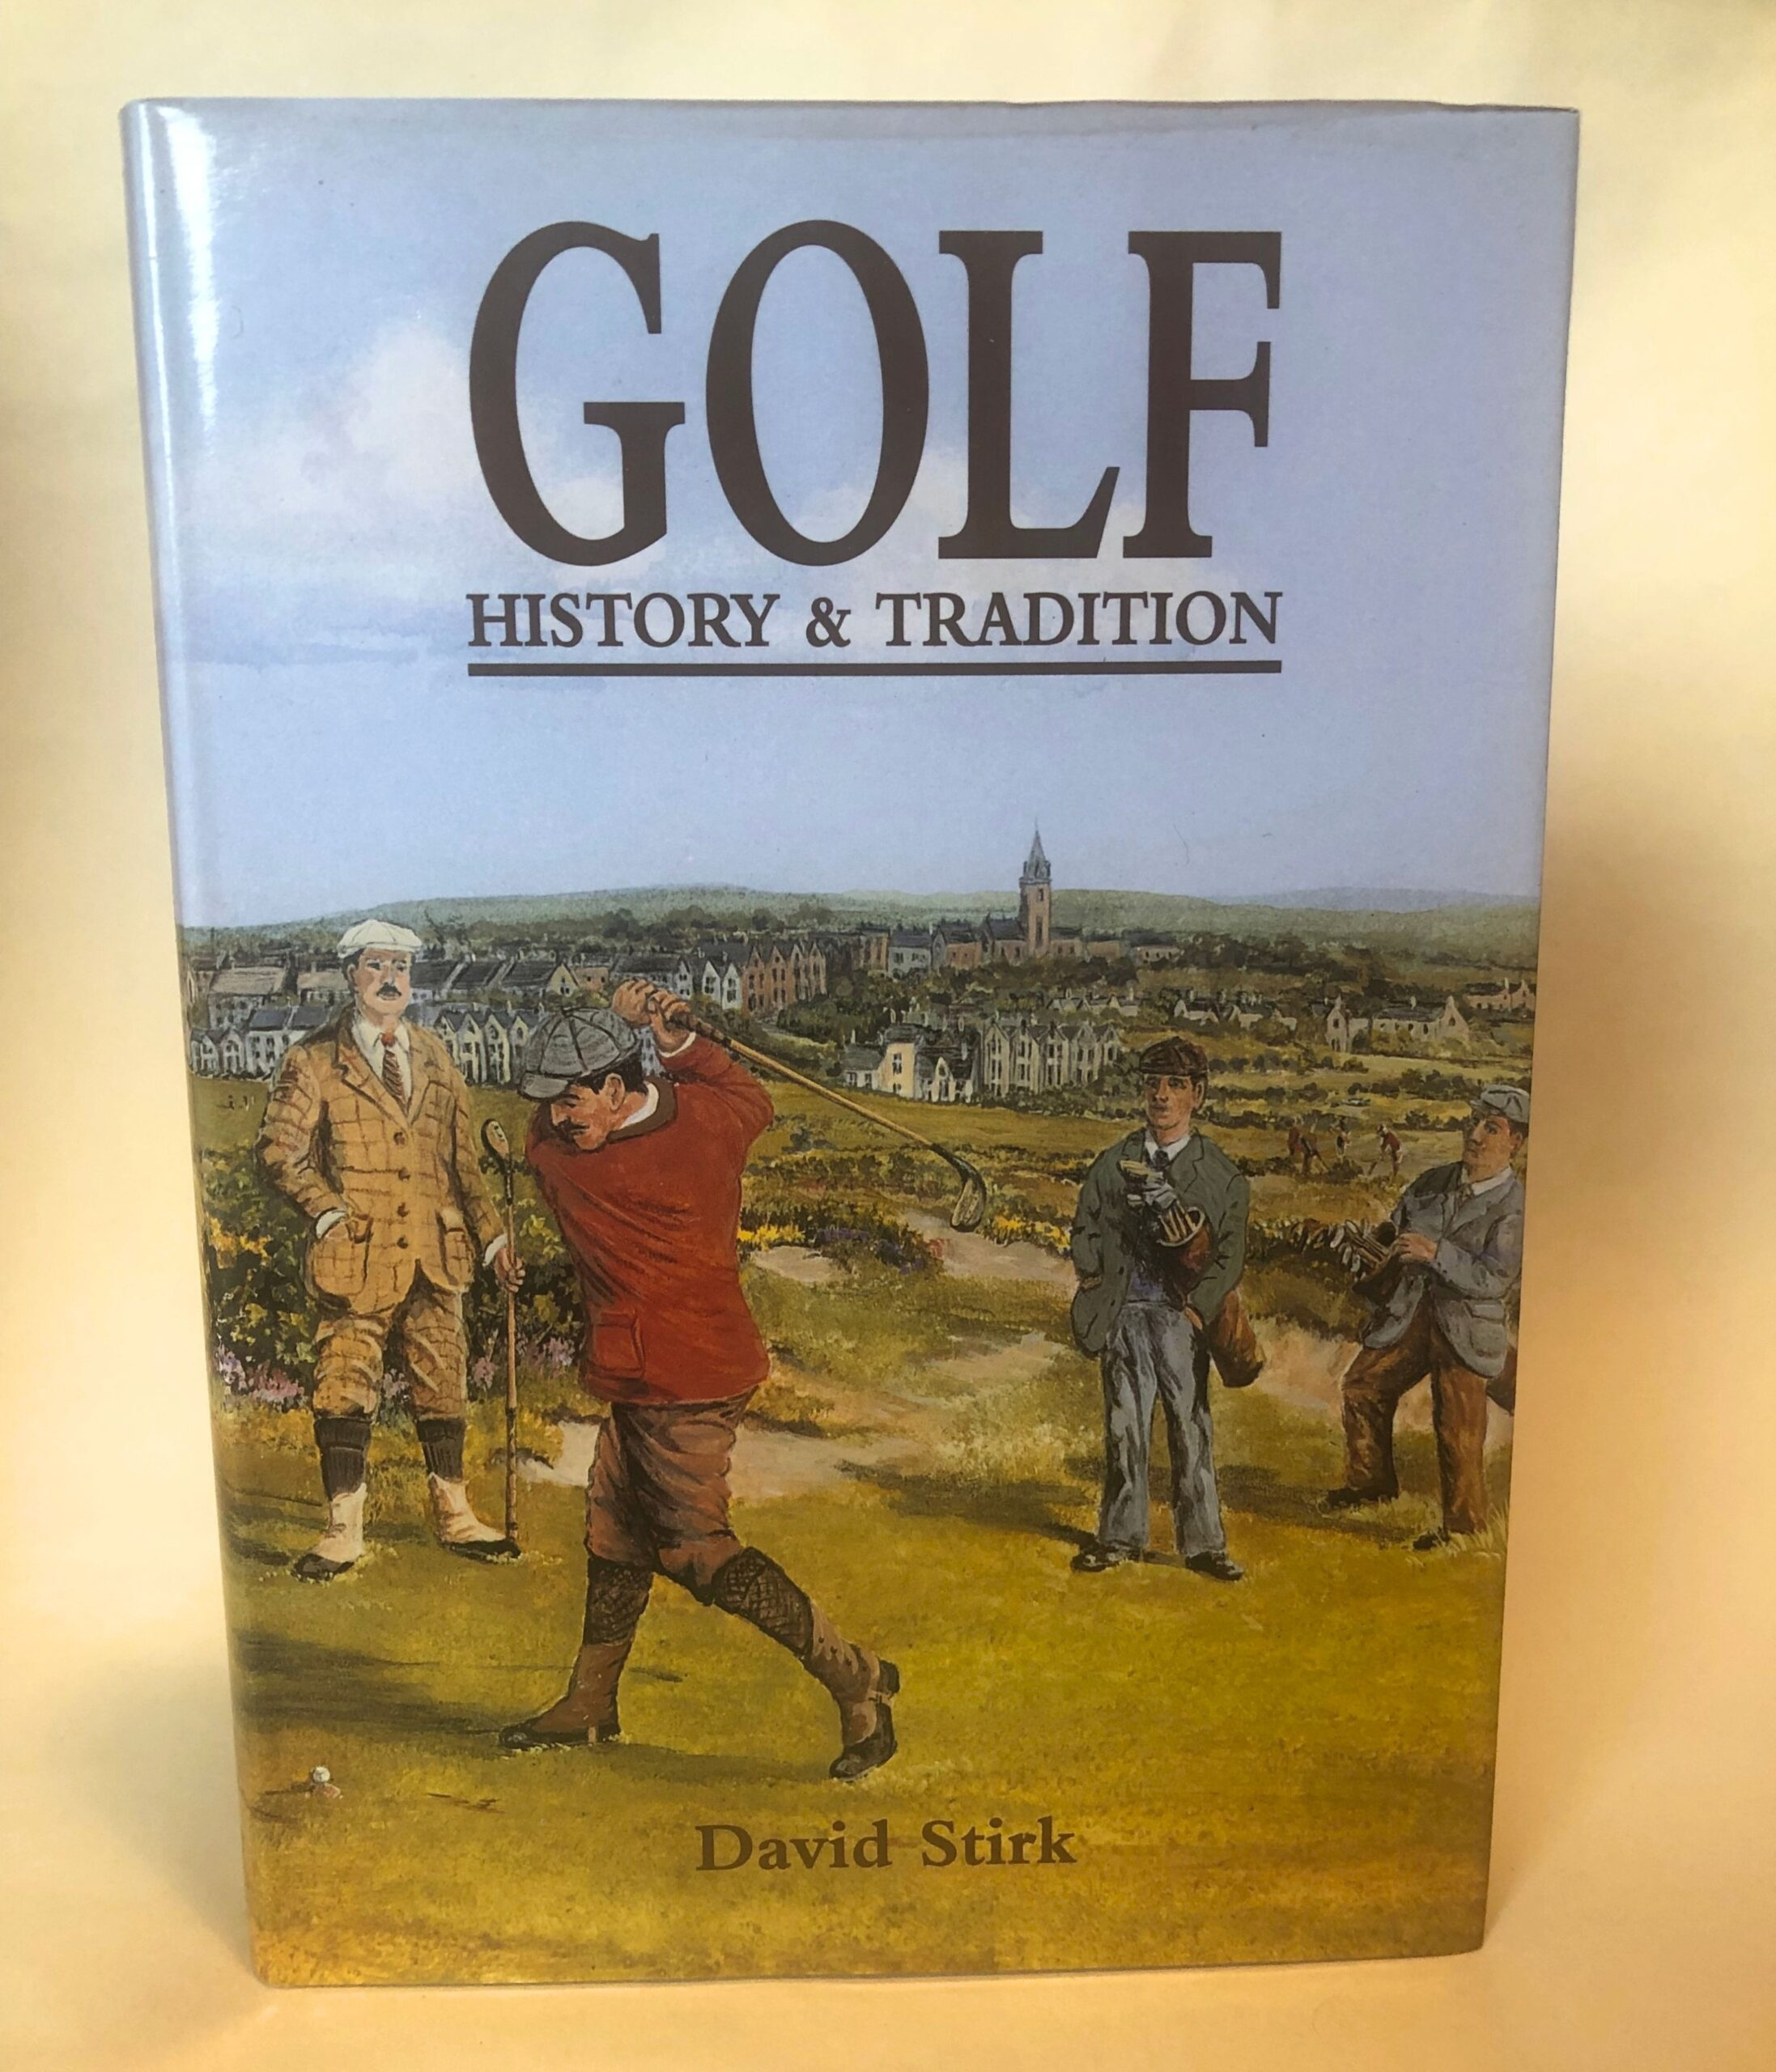 Golf: History & Tradition by David Stirk